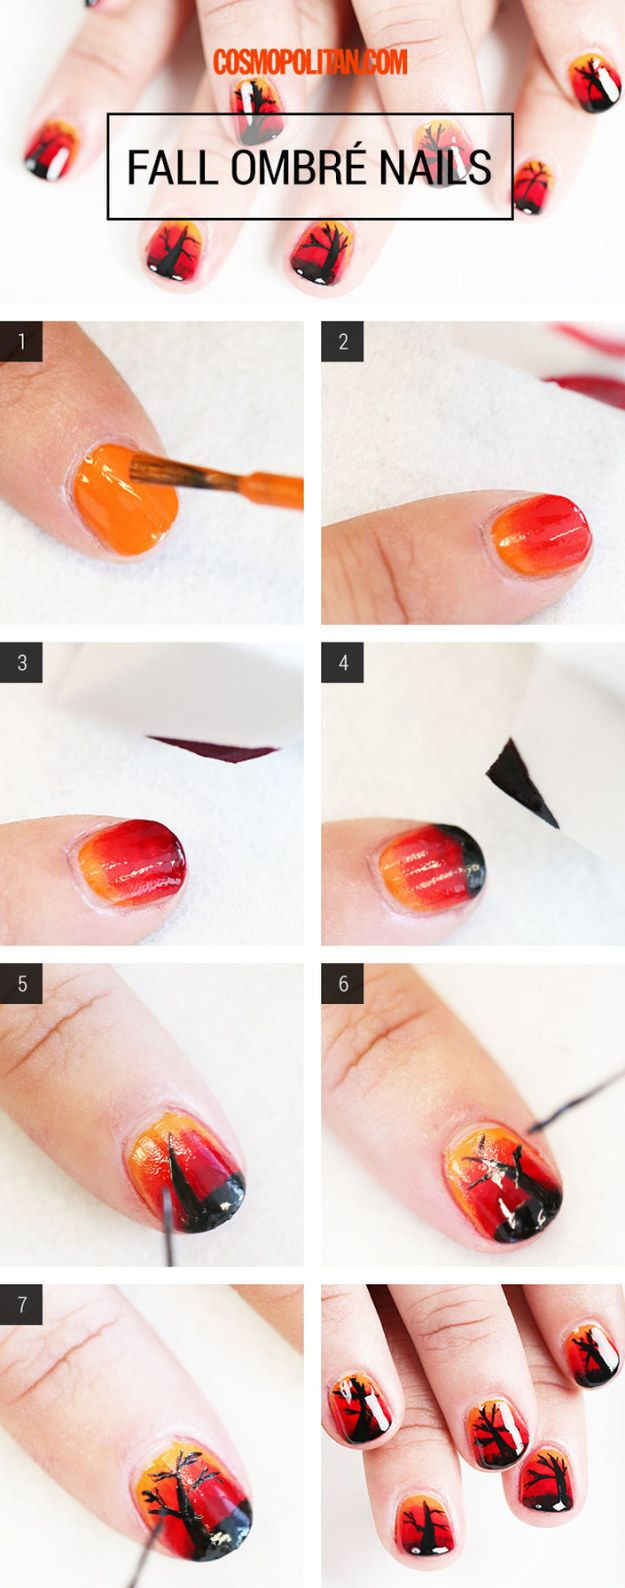 81 best nail art fall images on pinterest nail scissors autumn fall ombr nails solutioingenieria Image collections